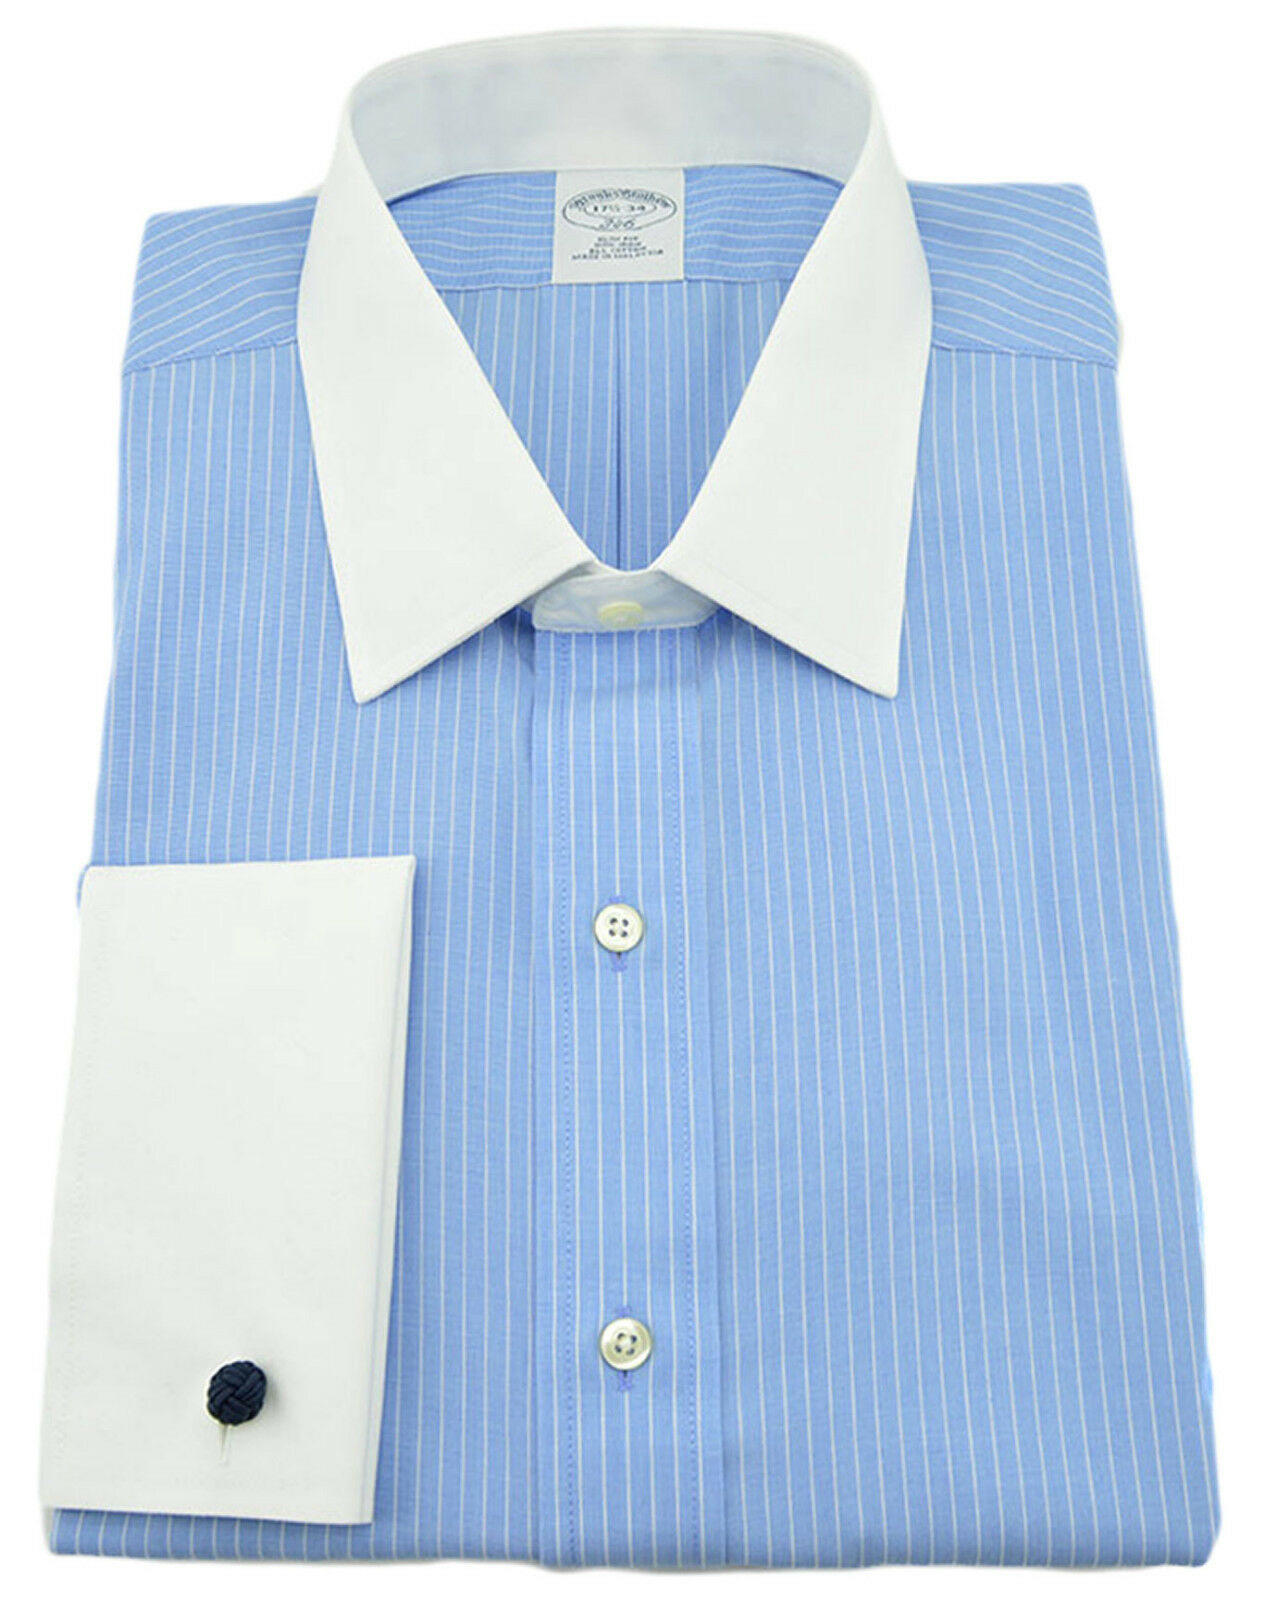 150 BROOKS BROTHERS Blau Weiß Striped French Cuffs  Herren Shirt NEW COLLECTION